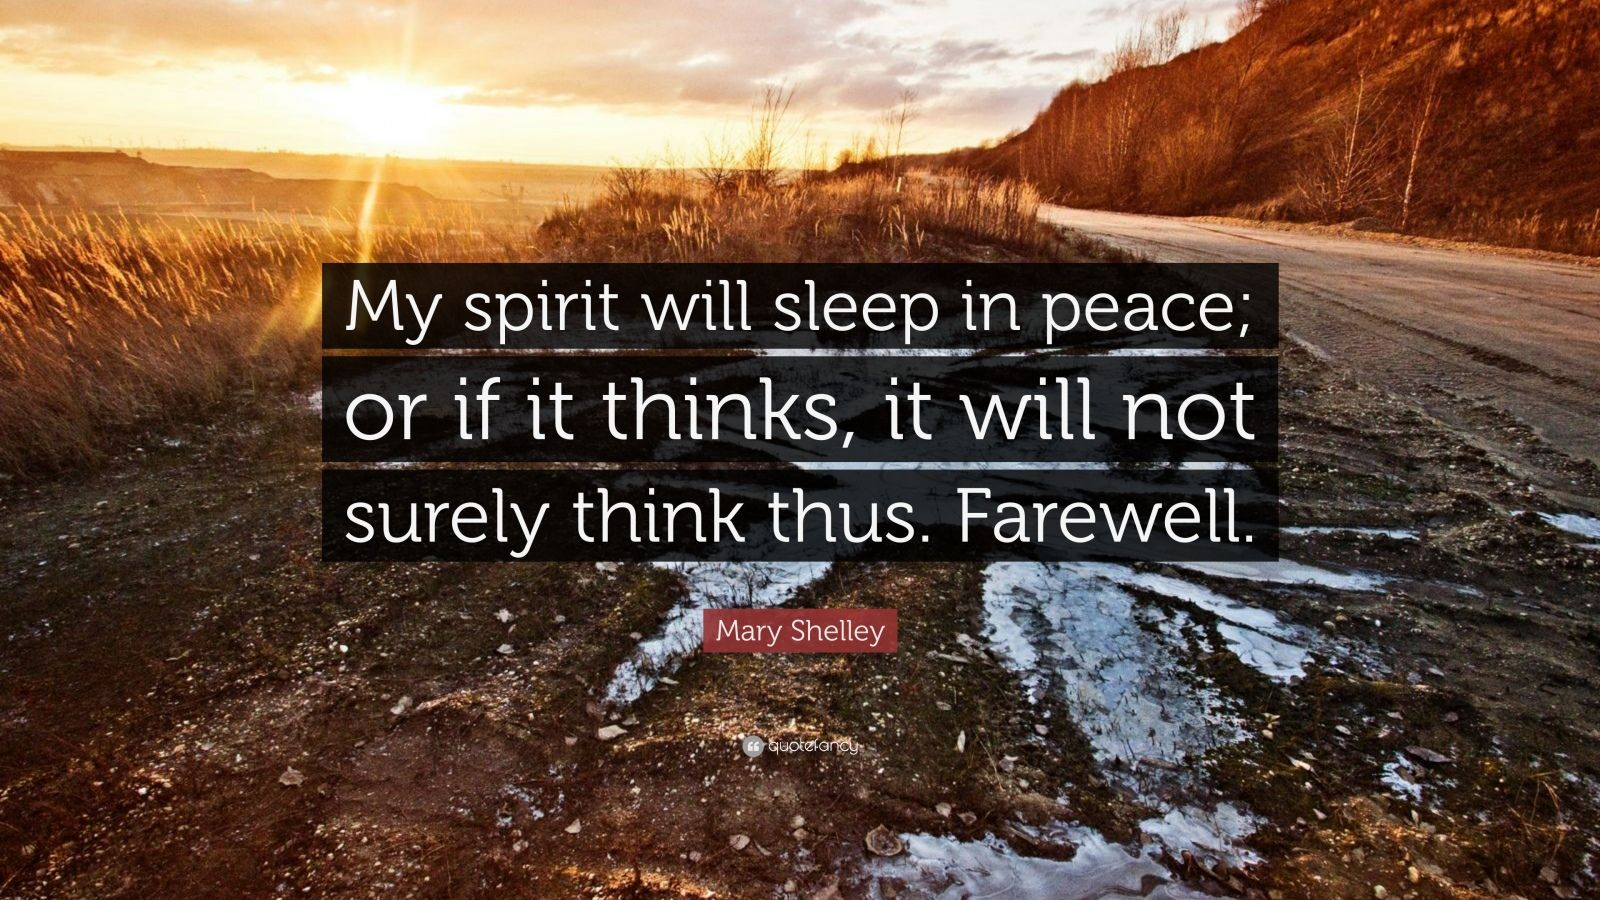 """Mary Shelley Quote: """"My spirit will sleep in peace; or if it thinks, it will not surely think thus. Farewell."""""""